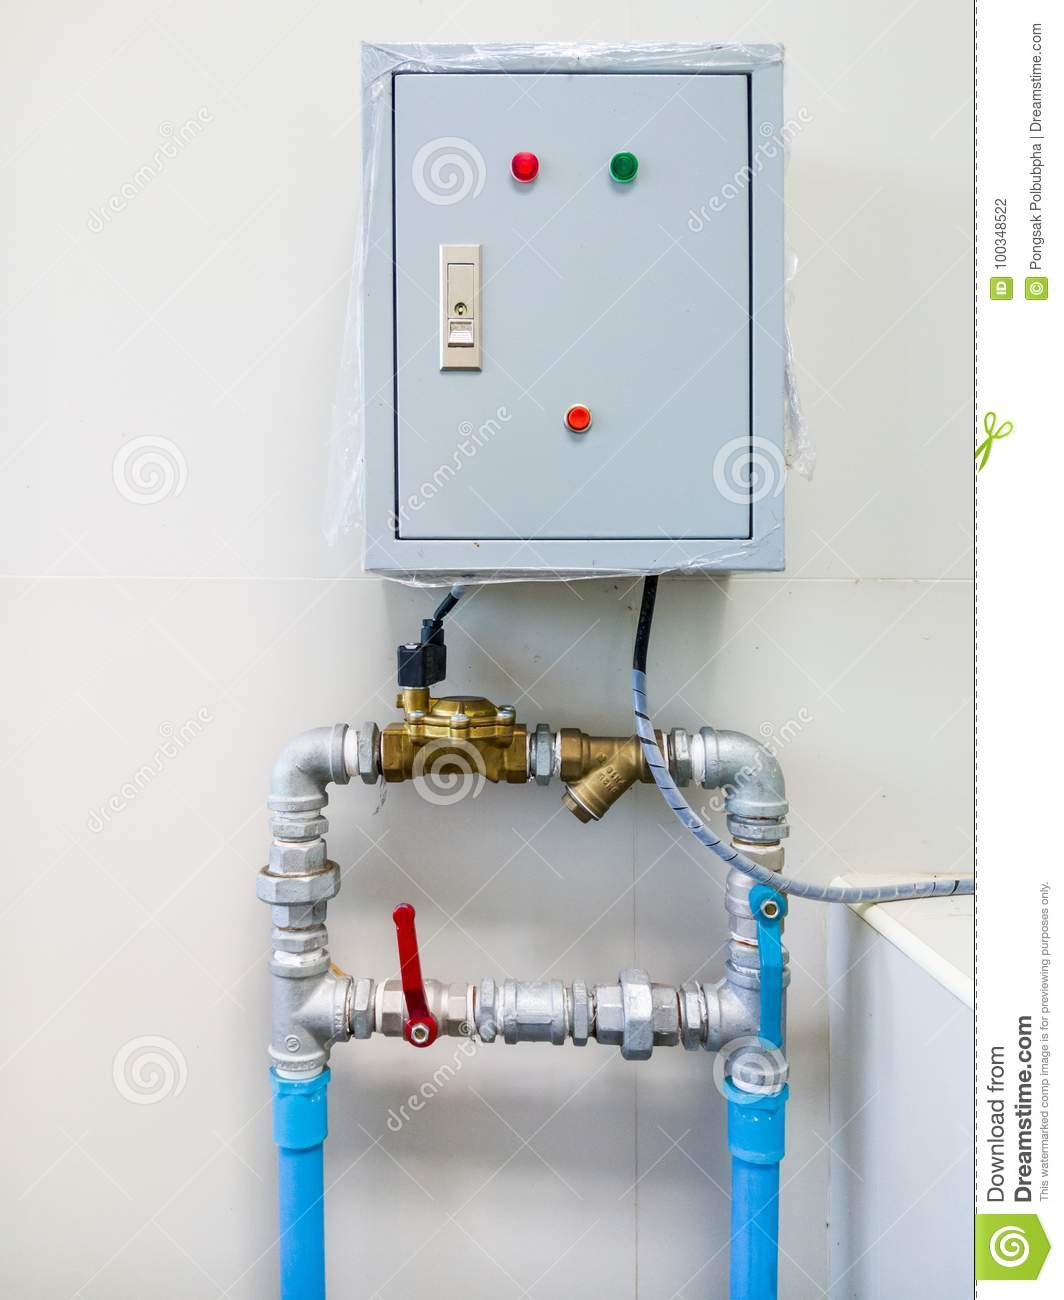 Electrical control box. stock photo. Image of handle - 100348522